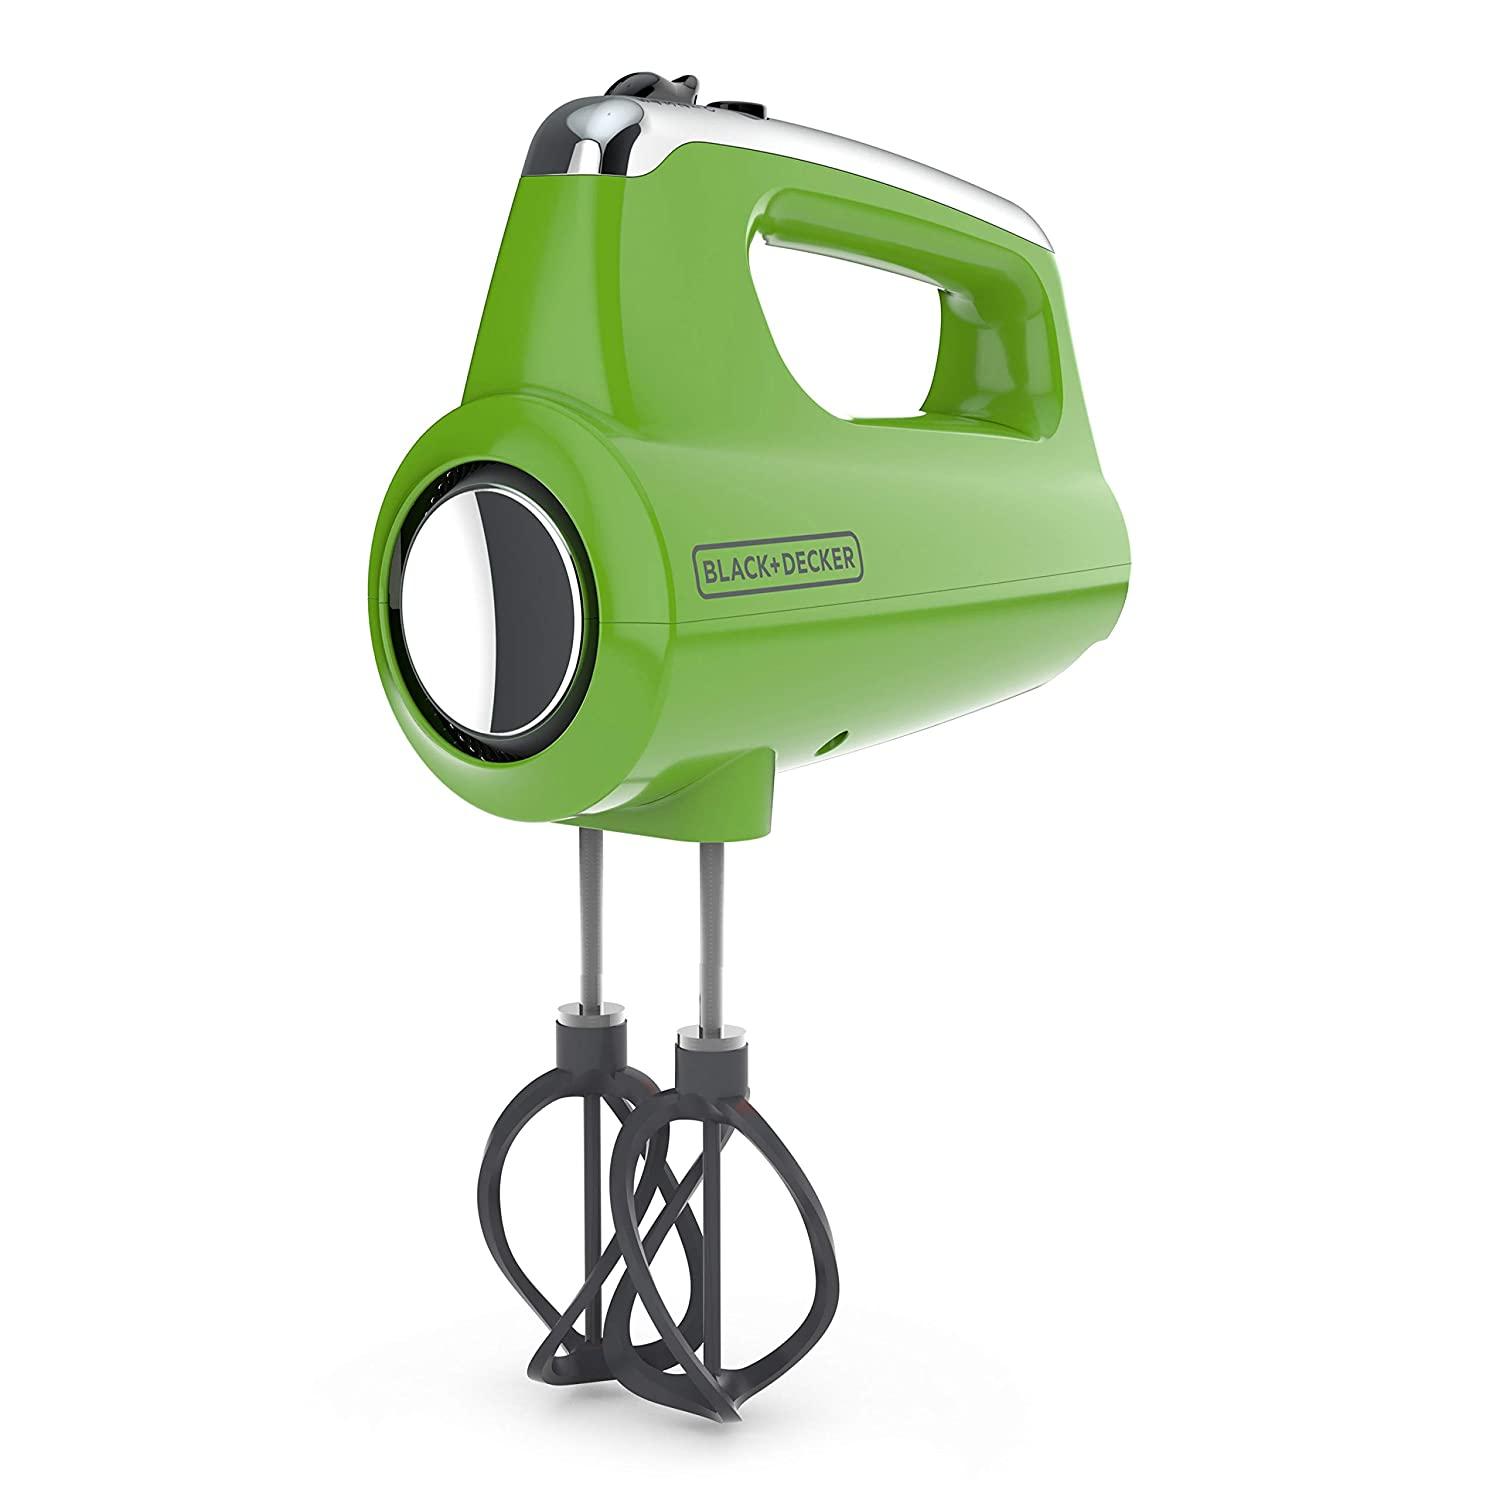 BLACK+DECKER MX600L Helix Performance Premium 5-Speed Hand Mixer Lime Green